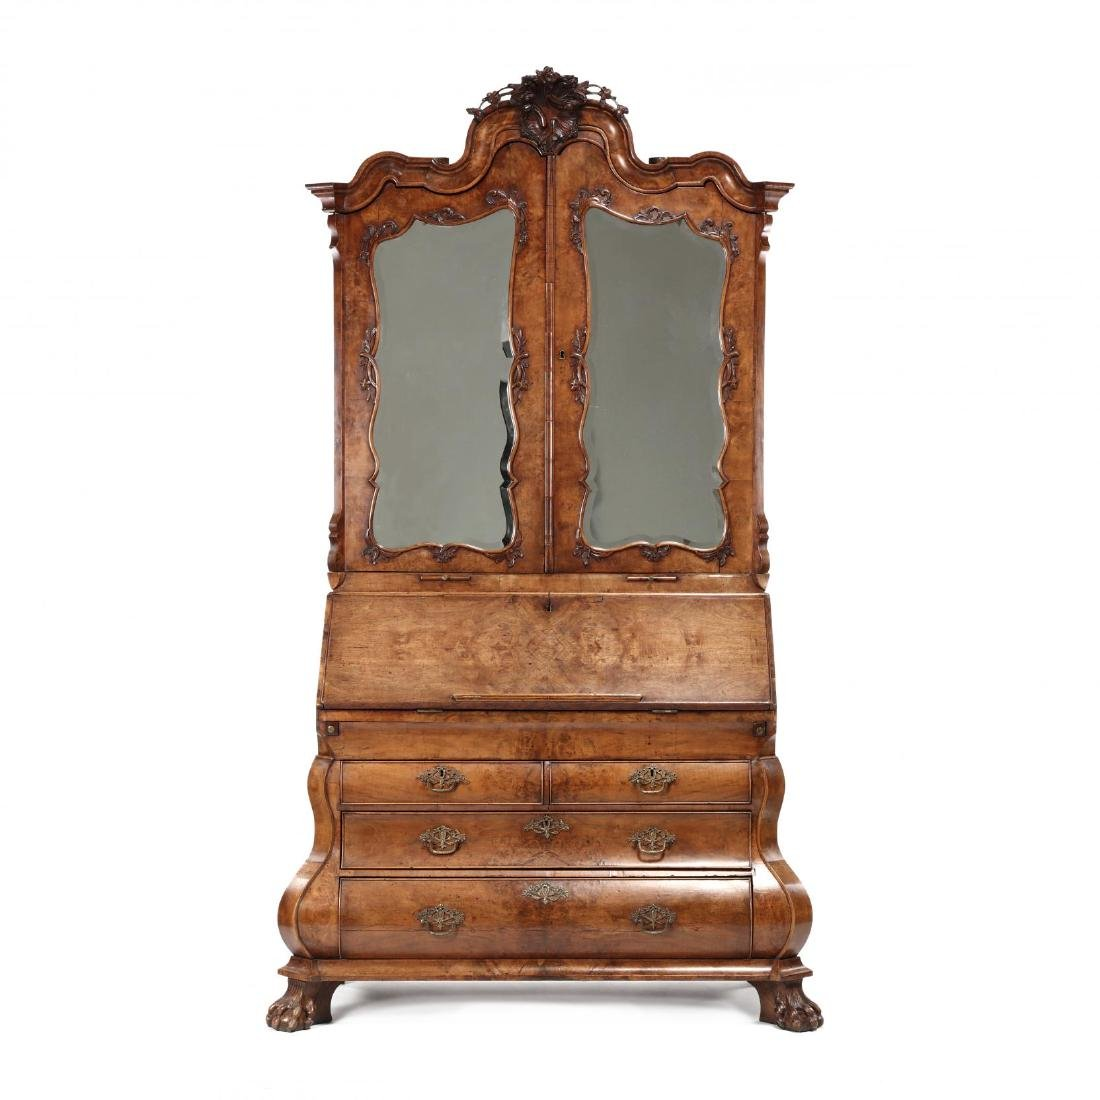 French or Dutch Baroque Bombé Secretaire Bookcase